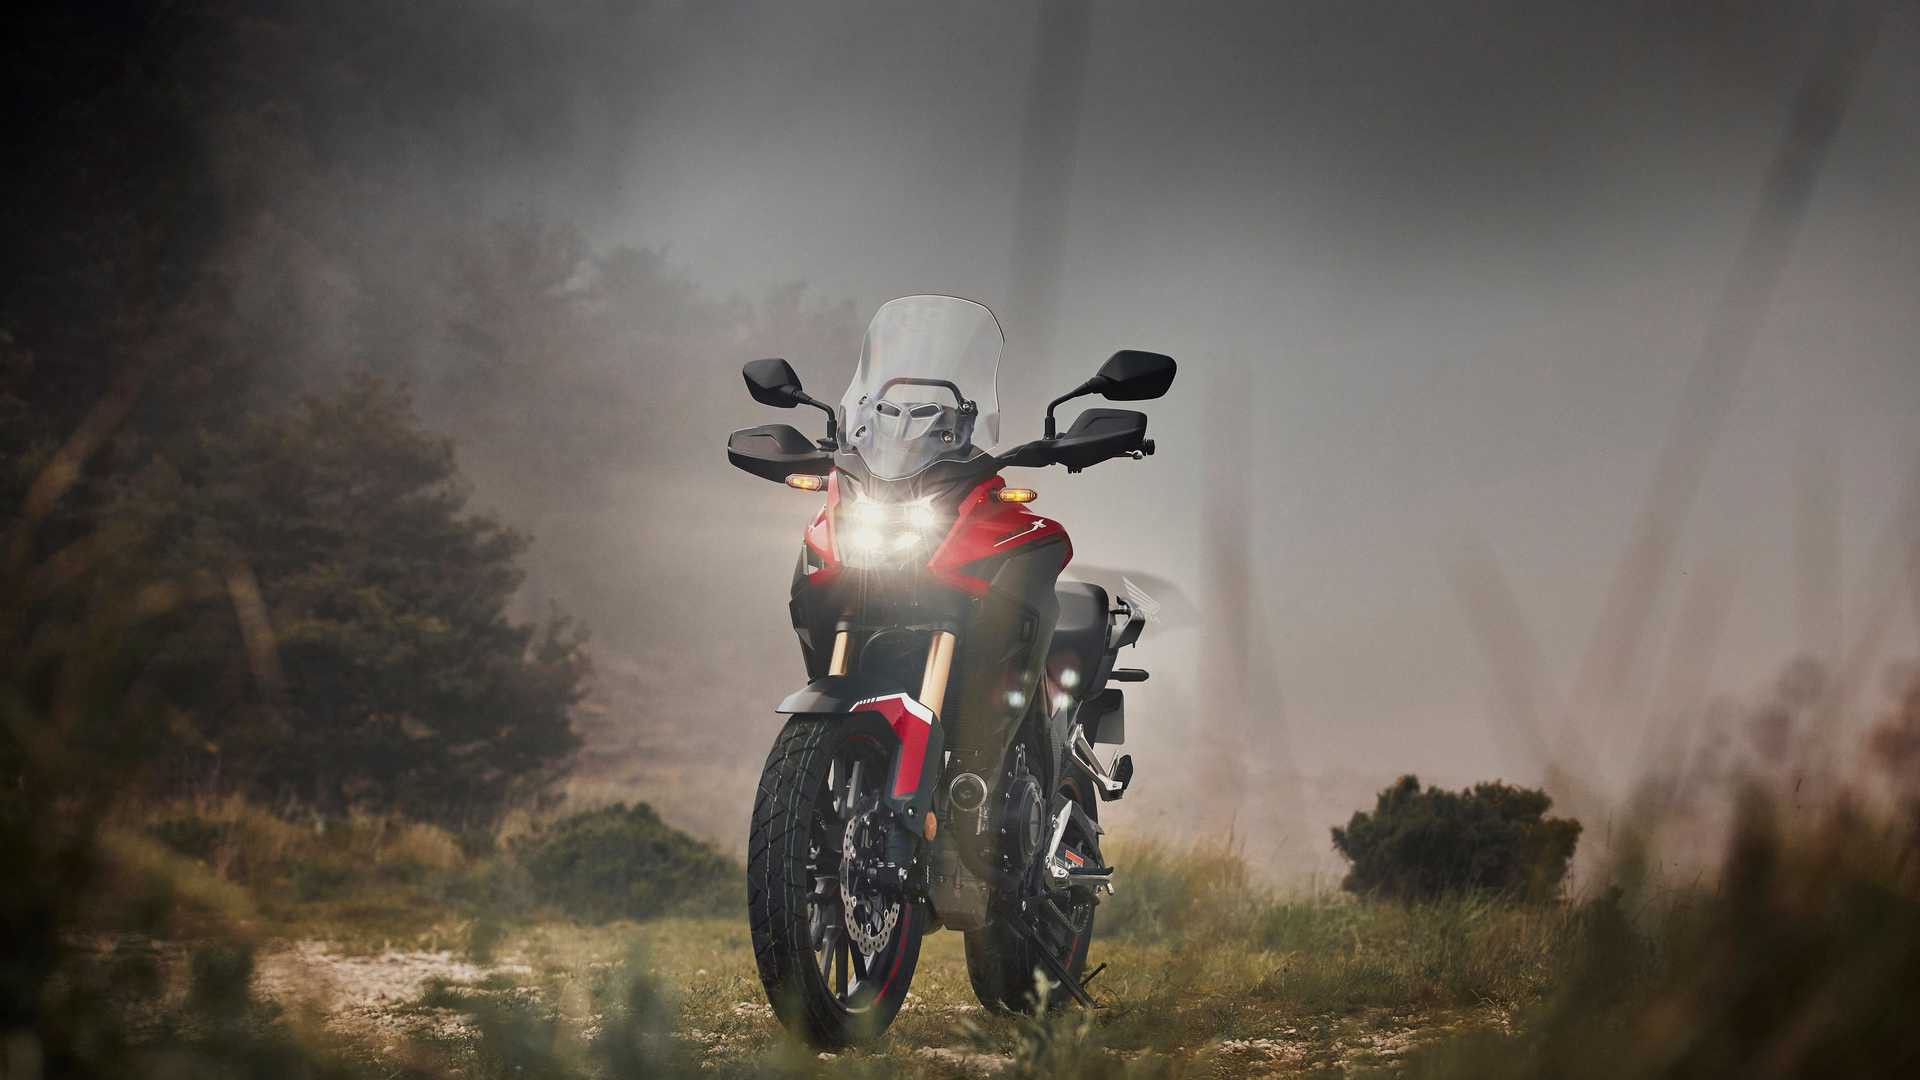 2022 honda cb500x front view illuminated red off road